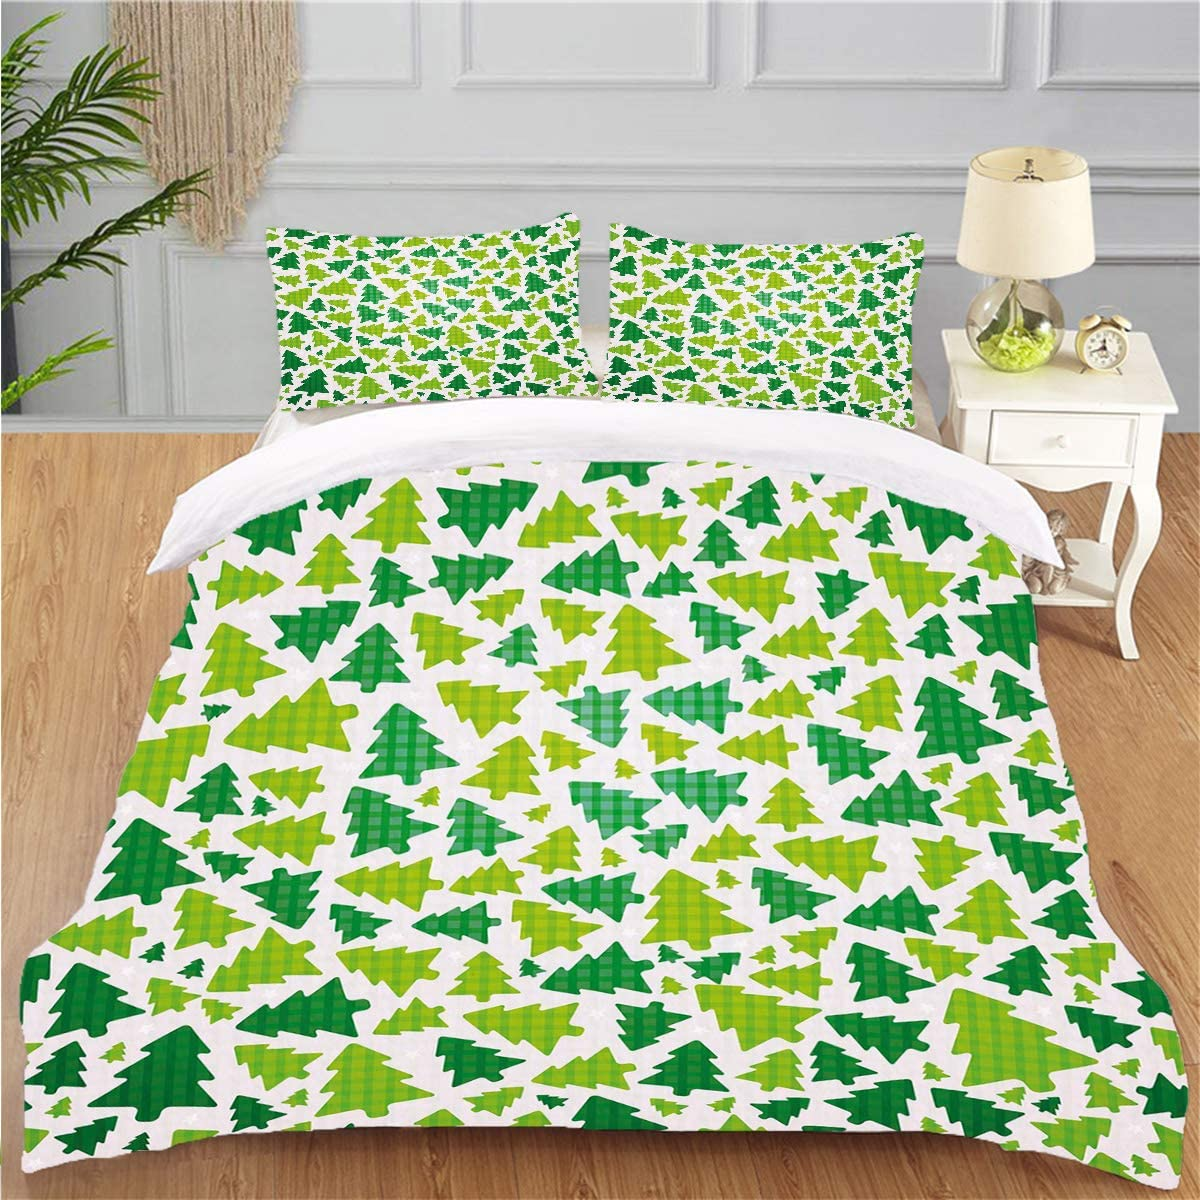 OTTOSUN Bedding Personality 3 Piece Duvet Cover Set Christmas Simplistic fir Pine Silhouette Checkered Pattern Fern Green Apple Green White Soft Breathable Home Warm Duvet Comforter Cover,Full